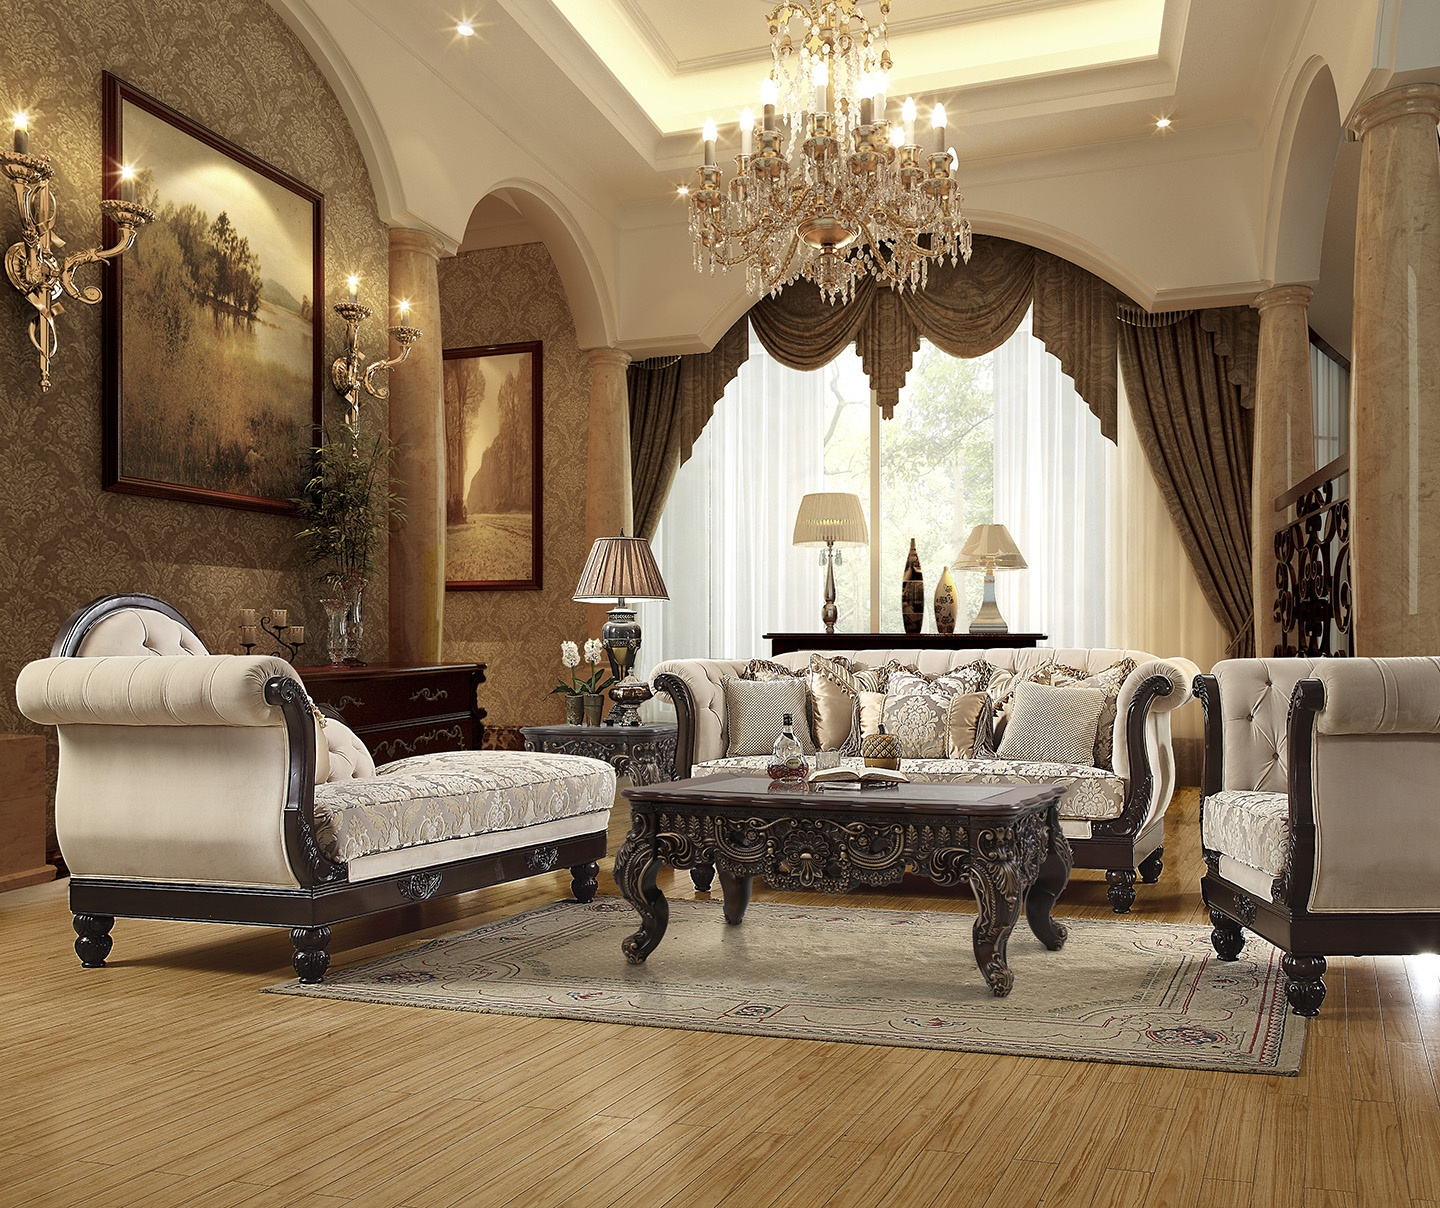 Traditional Living Room Set 3 PCS in Brown Fabric Traditional Style Homey Design HD-2651